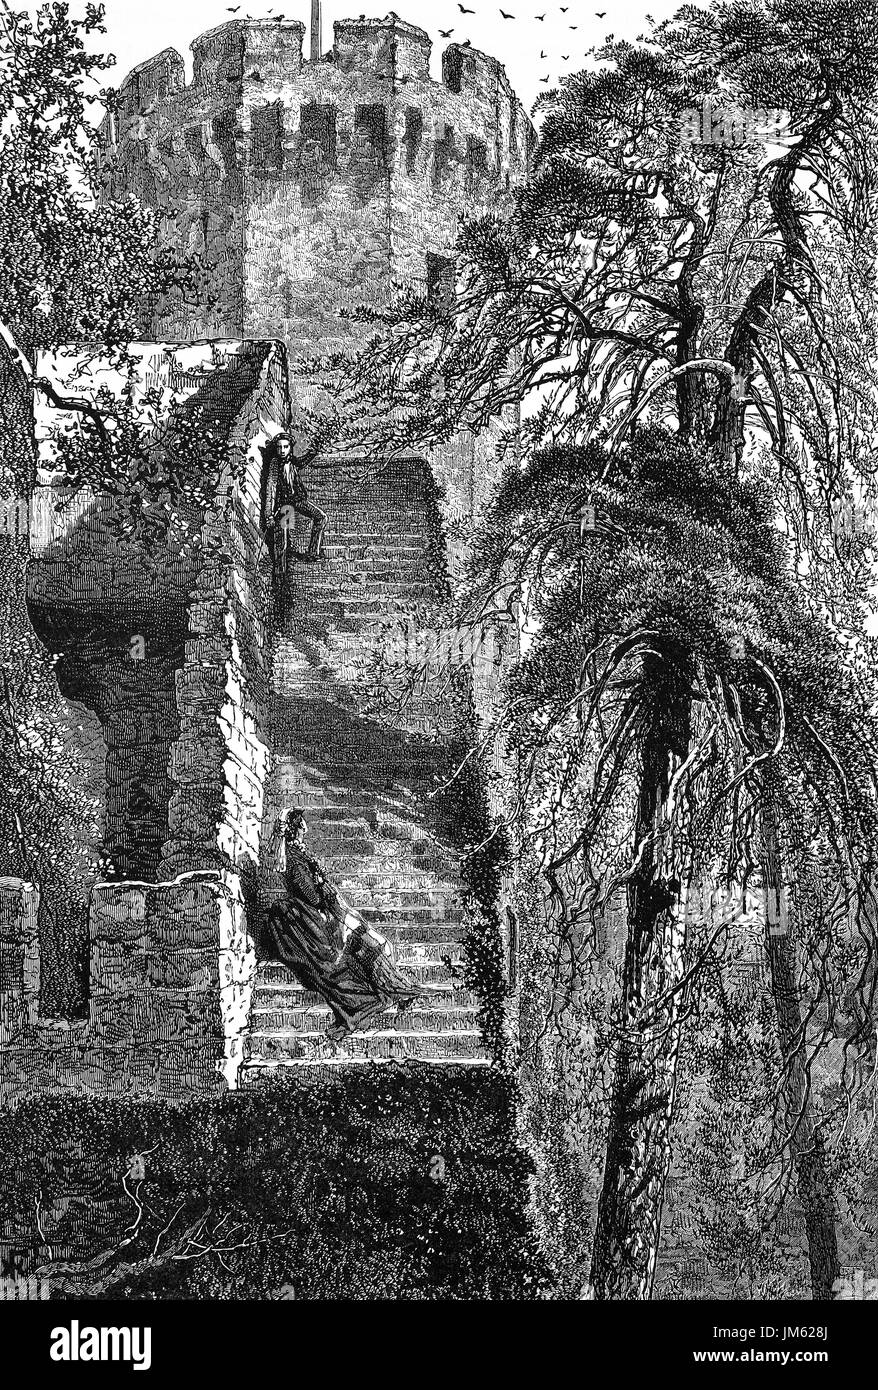 1870: Guy's tower and the walls of medieval  Warwick Castle situated on a bend of the River Avon. It was rebuilt in stone in the 12th and 14th centuries and has been used as a stronghold until the early 17th century, Warwickshire, England, - Stock Image